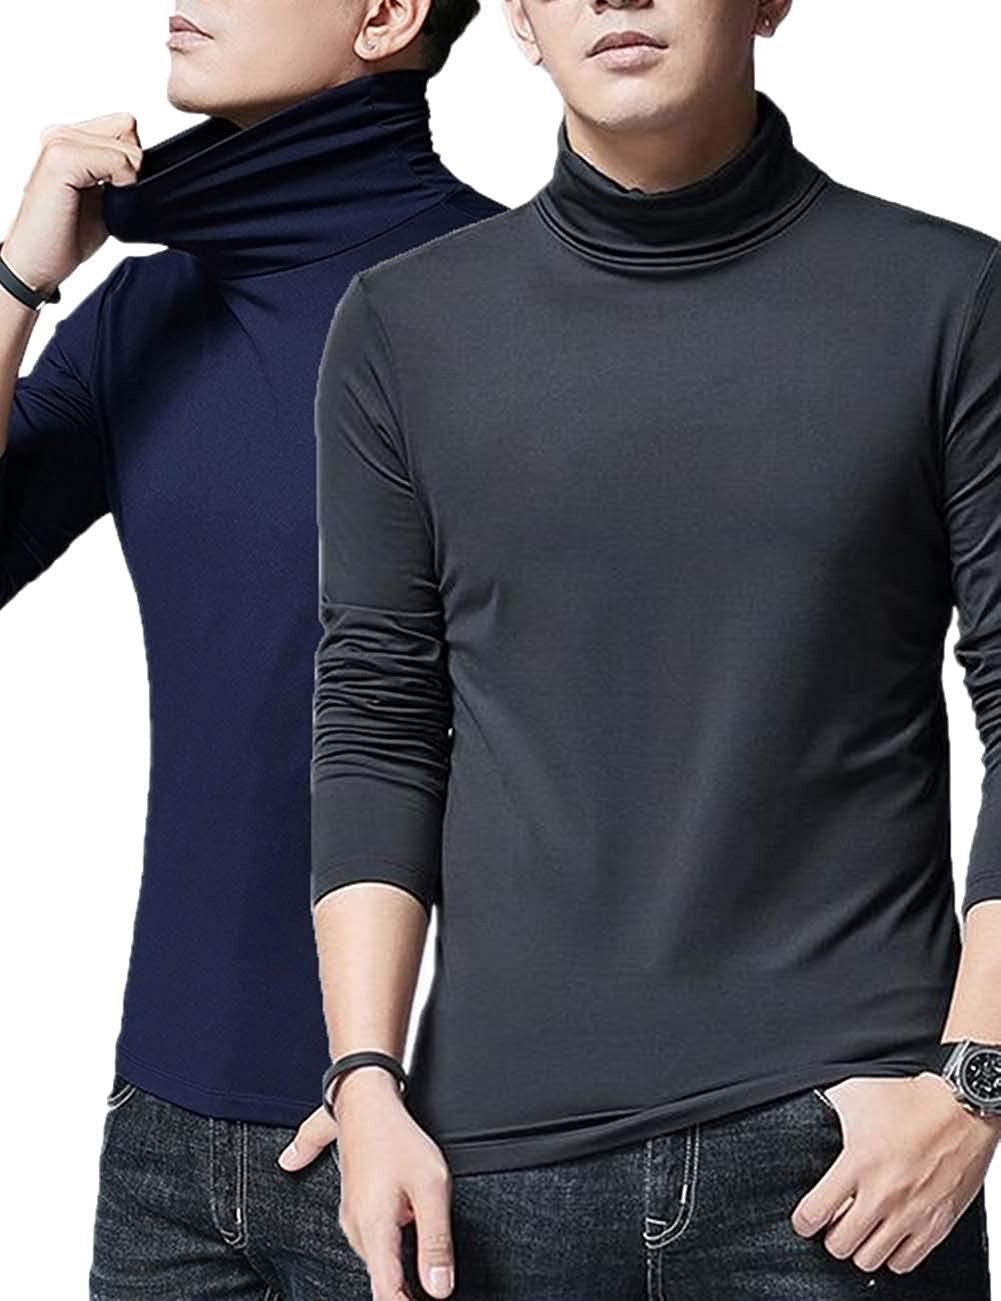 YSE Men/'s Long Sleeve Half High Neck T-Shirts Pack of 2